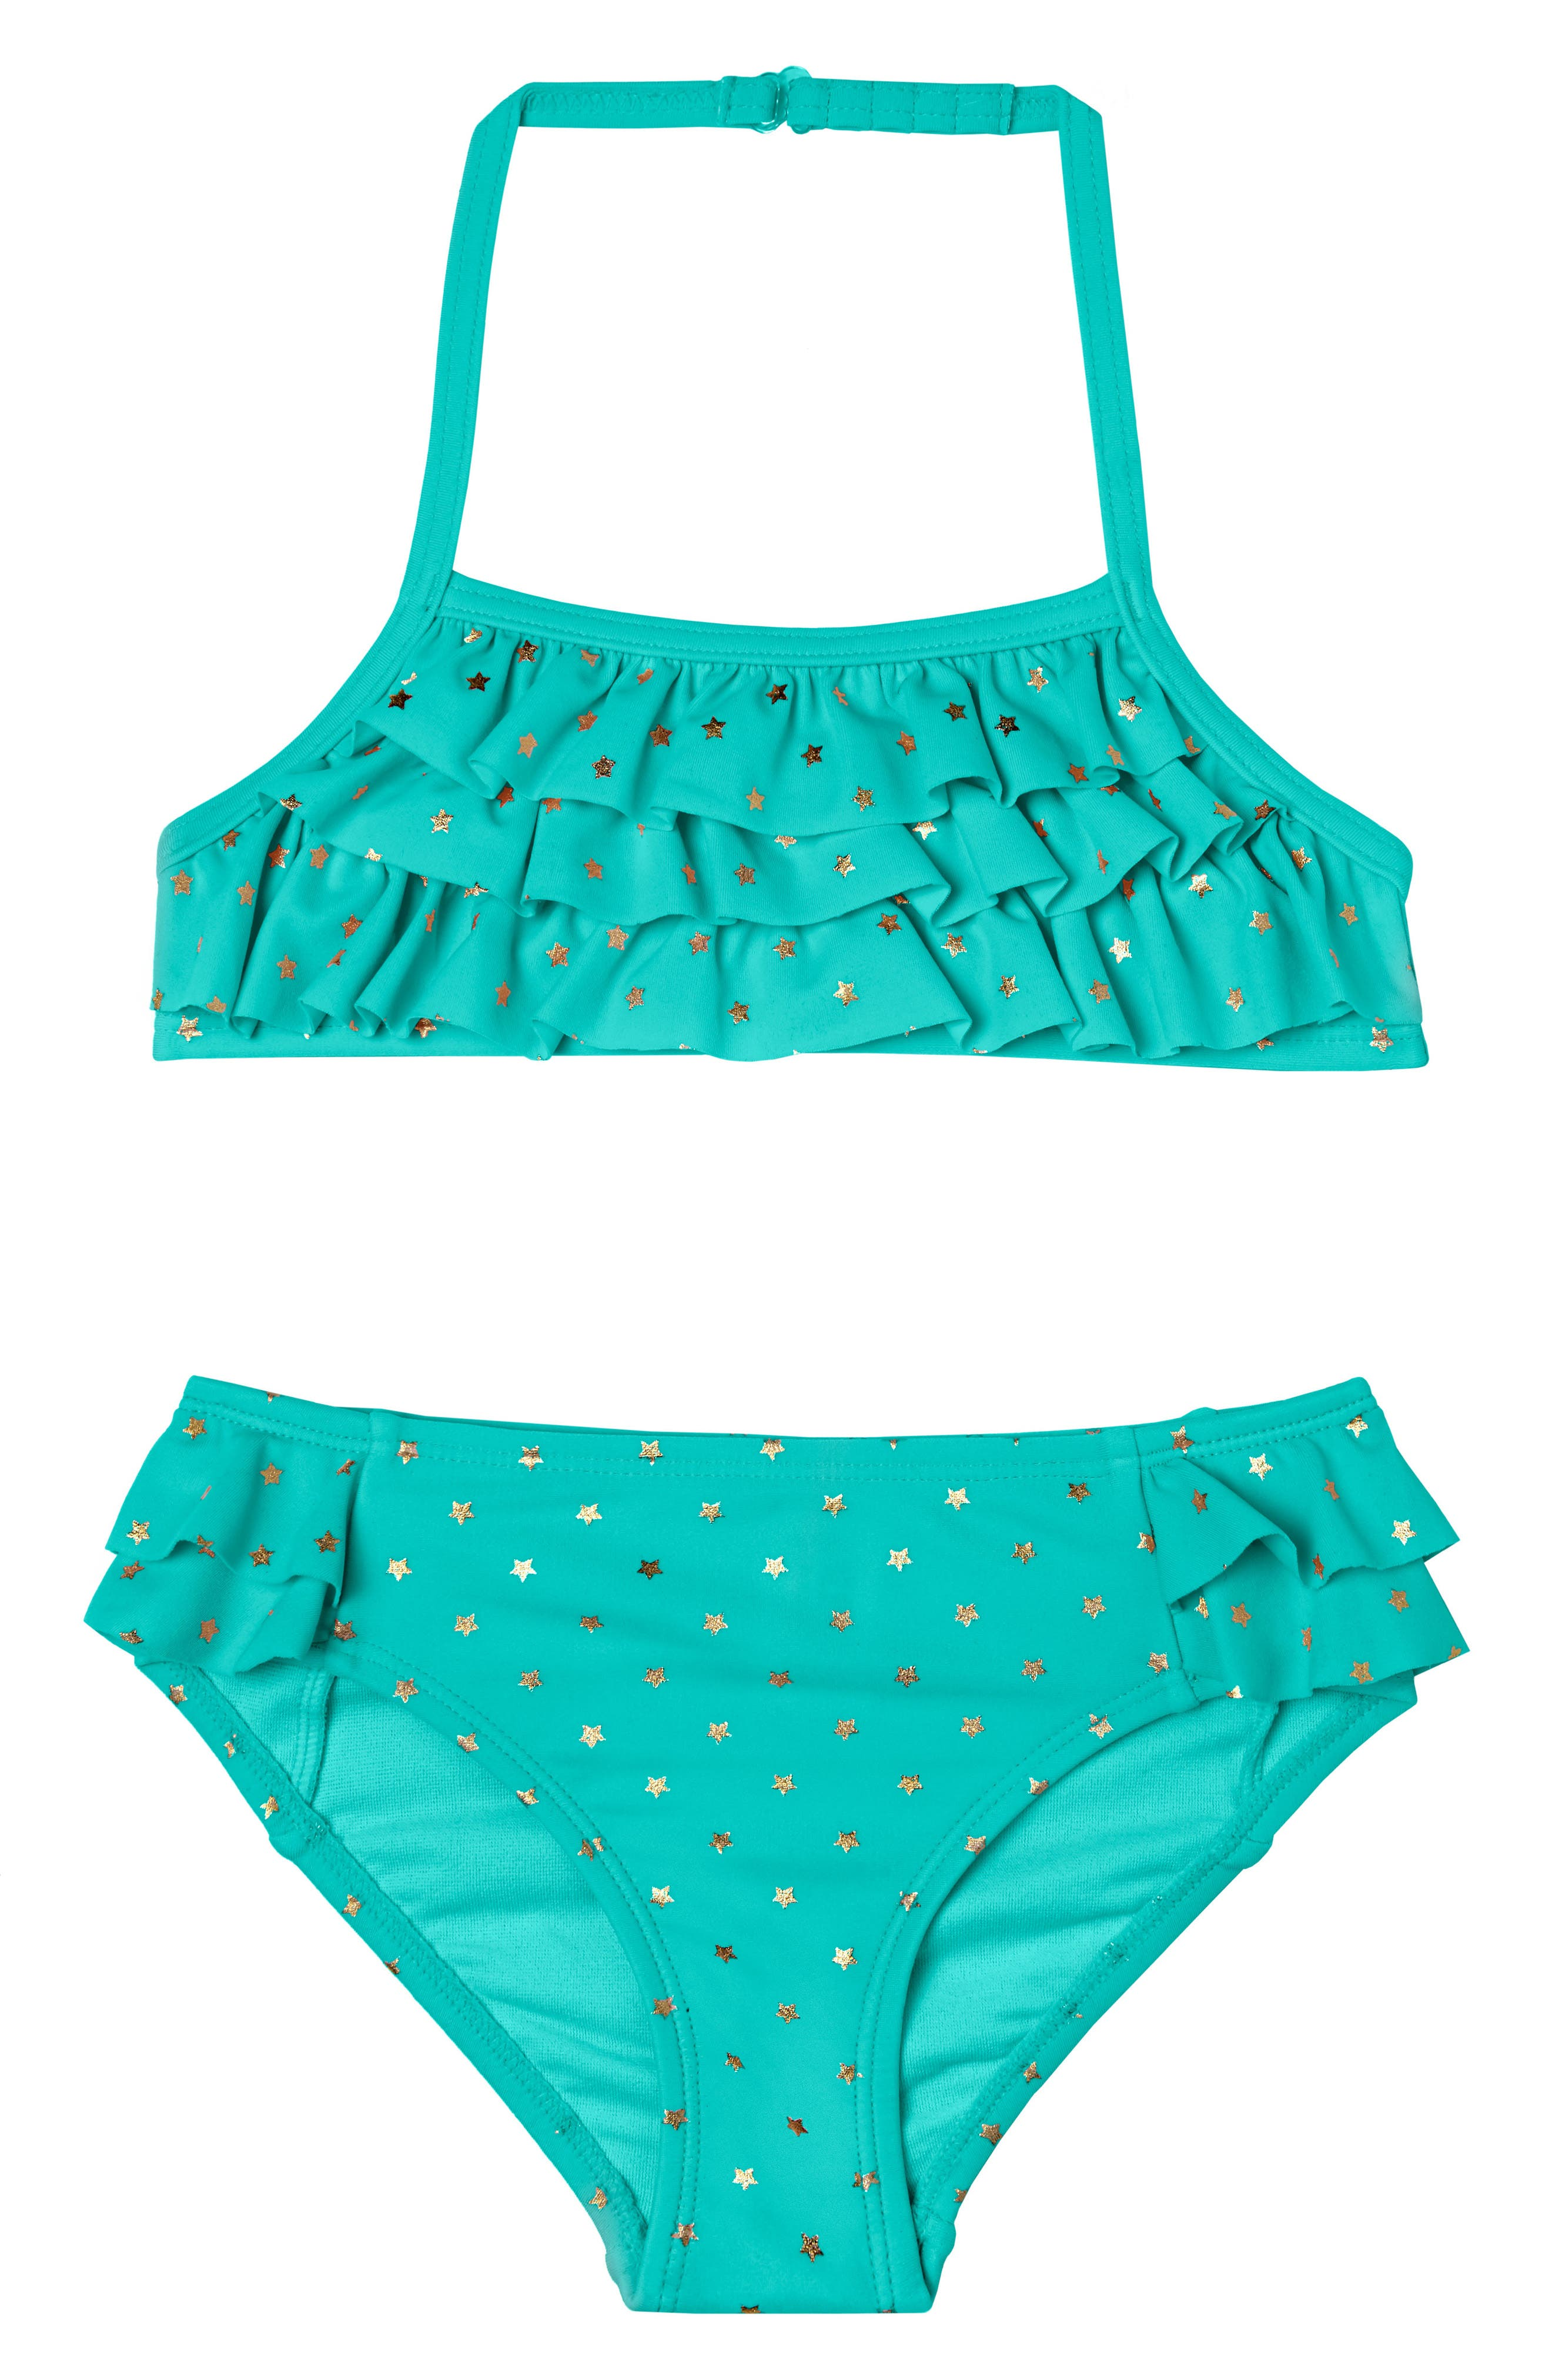 Alternate Image 1 Selected - Hula Star Twinkle Star Two-Piece Swimsuit (Toddler Girls & Little Girls)